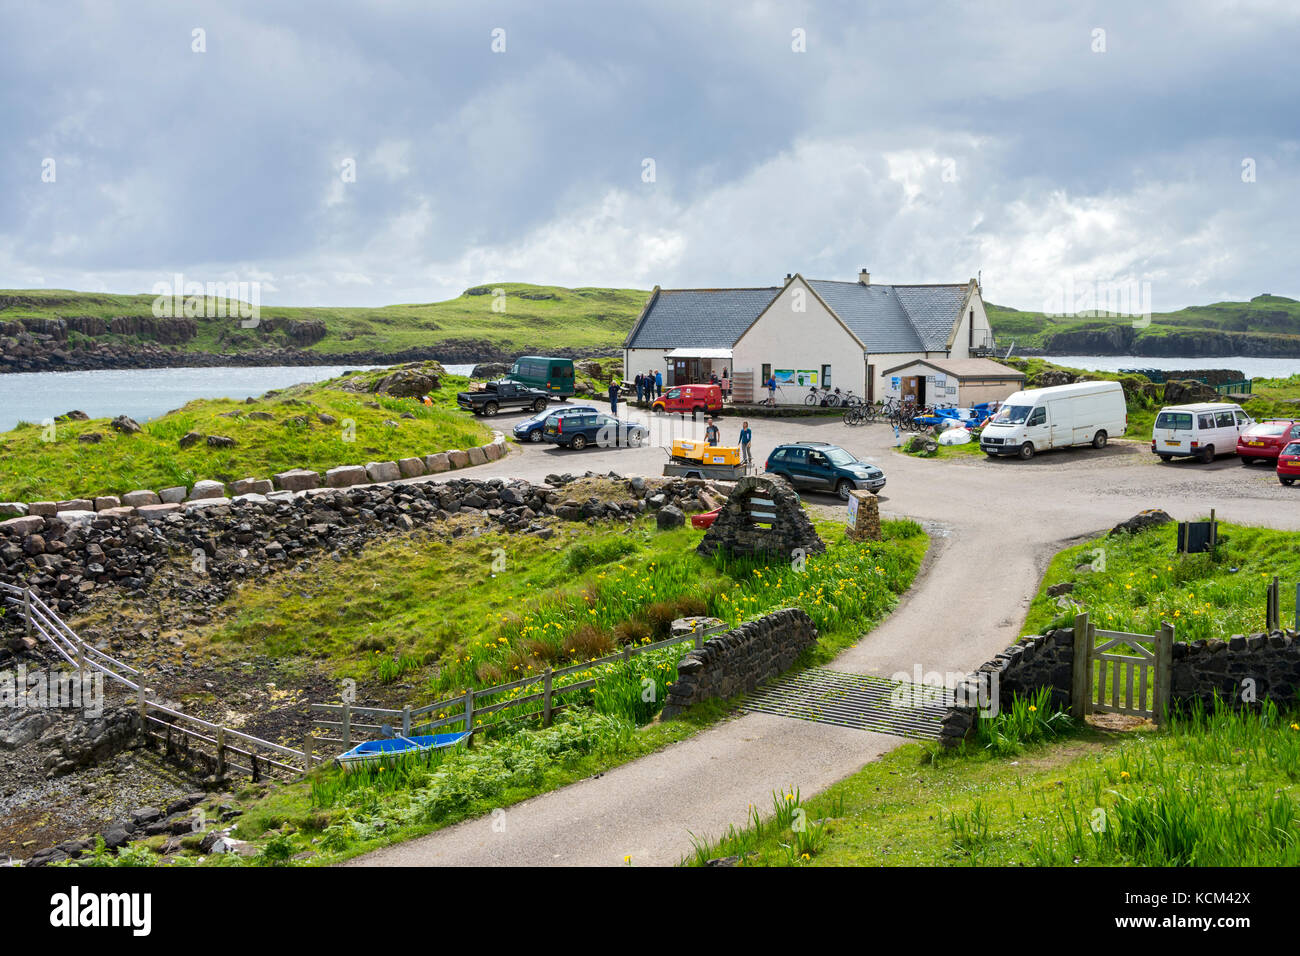 The Galmisdale Café and Bar at Galmisdale Point on the Isle of Eigg, Scotland, UK Stock Photo